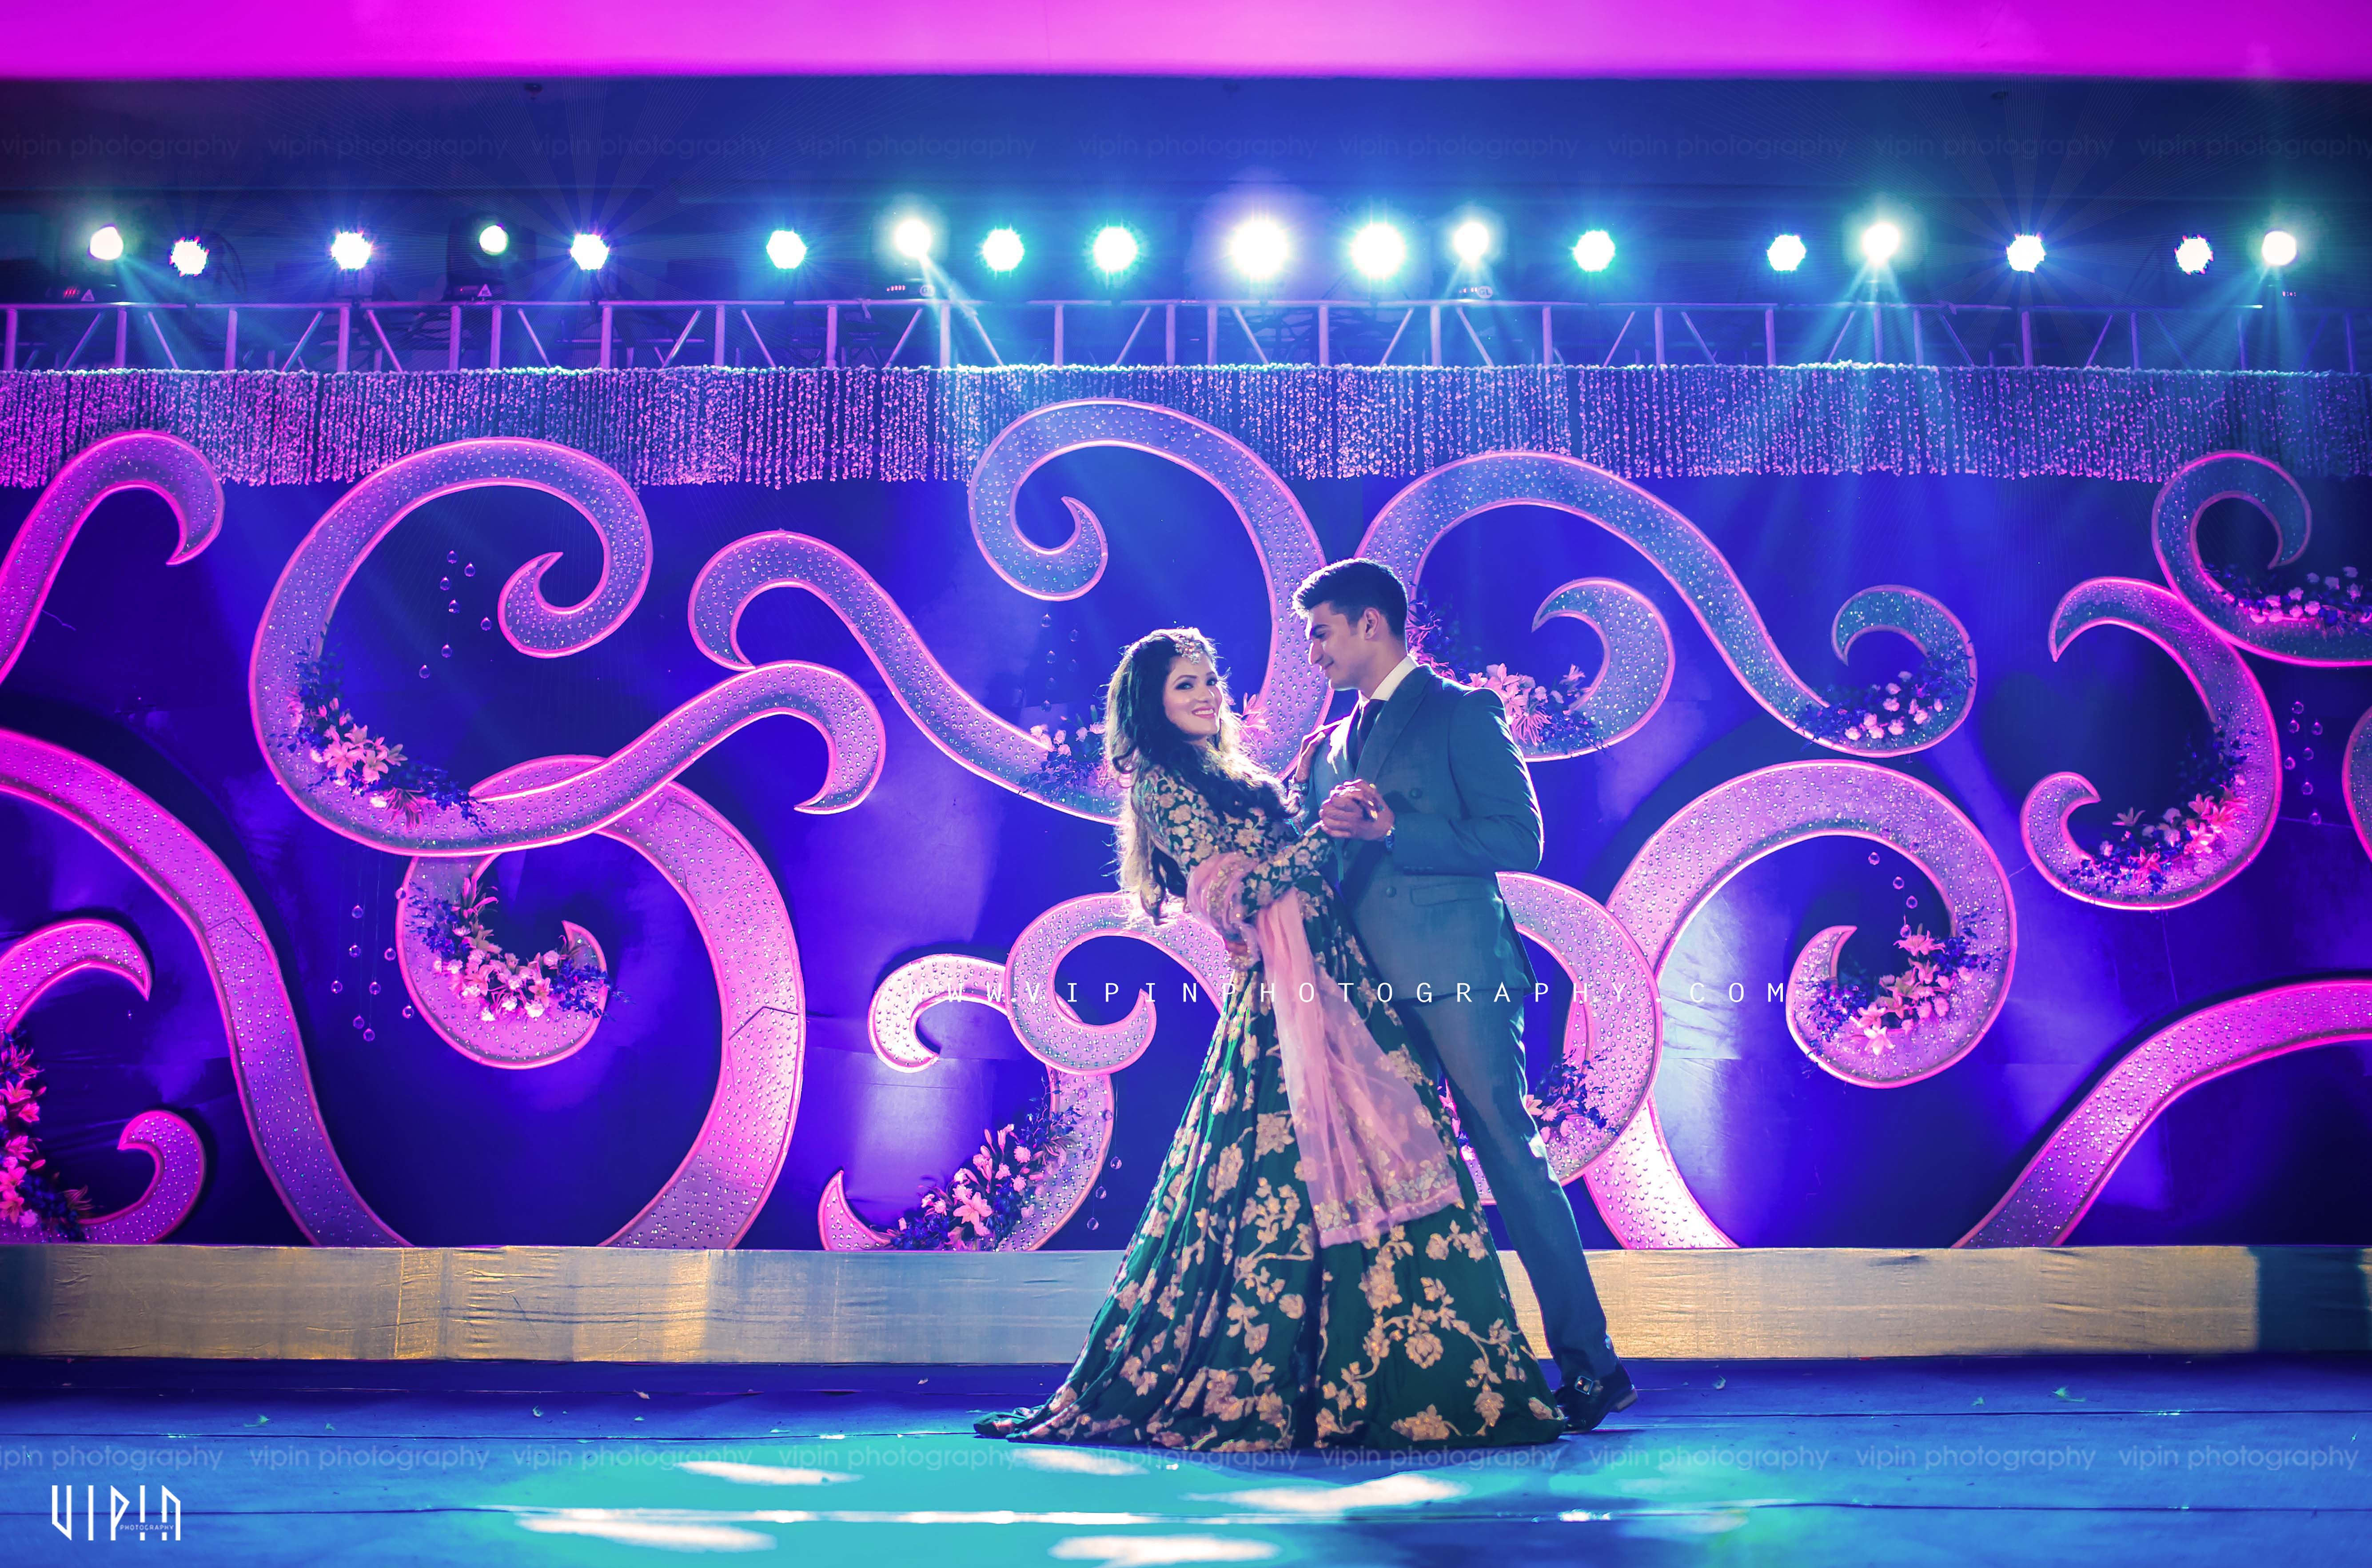 rimple & keshav!:vipin photography, bianca, sabyasachi couture pvt ltd